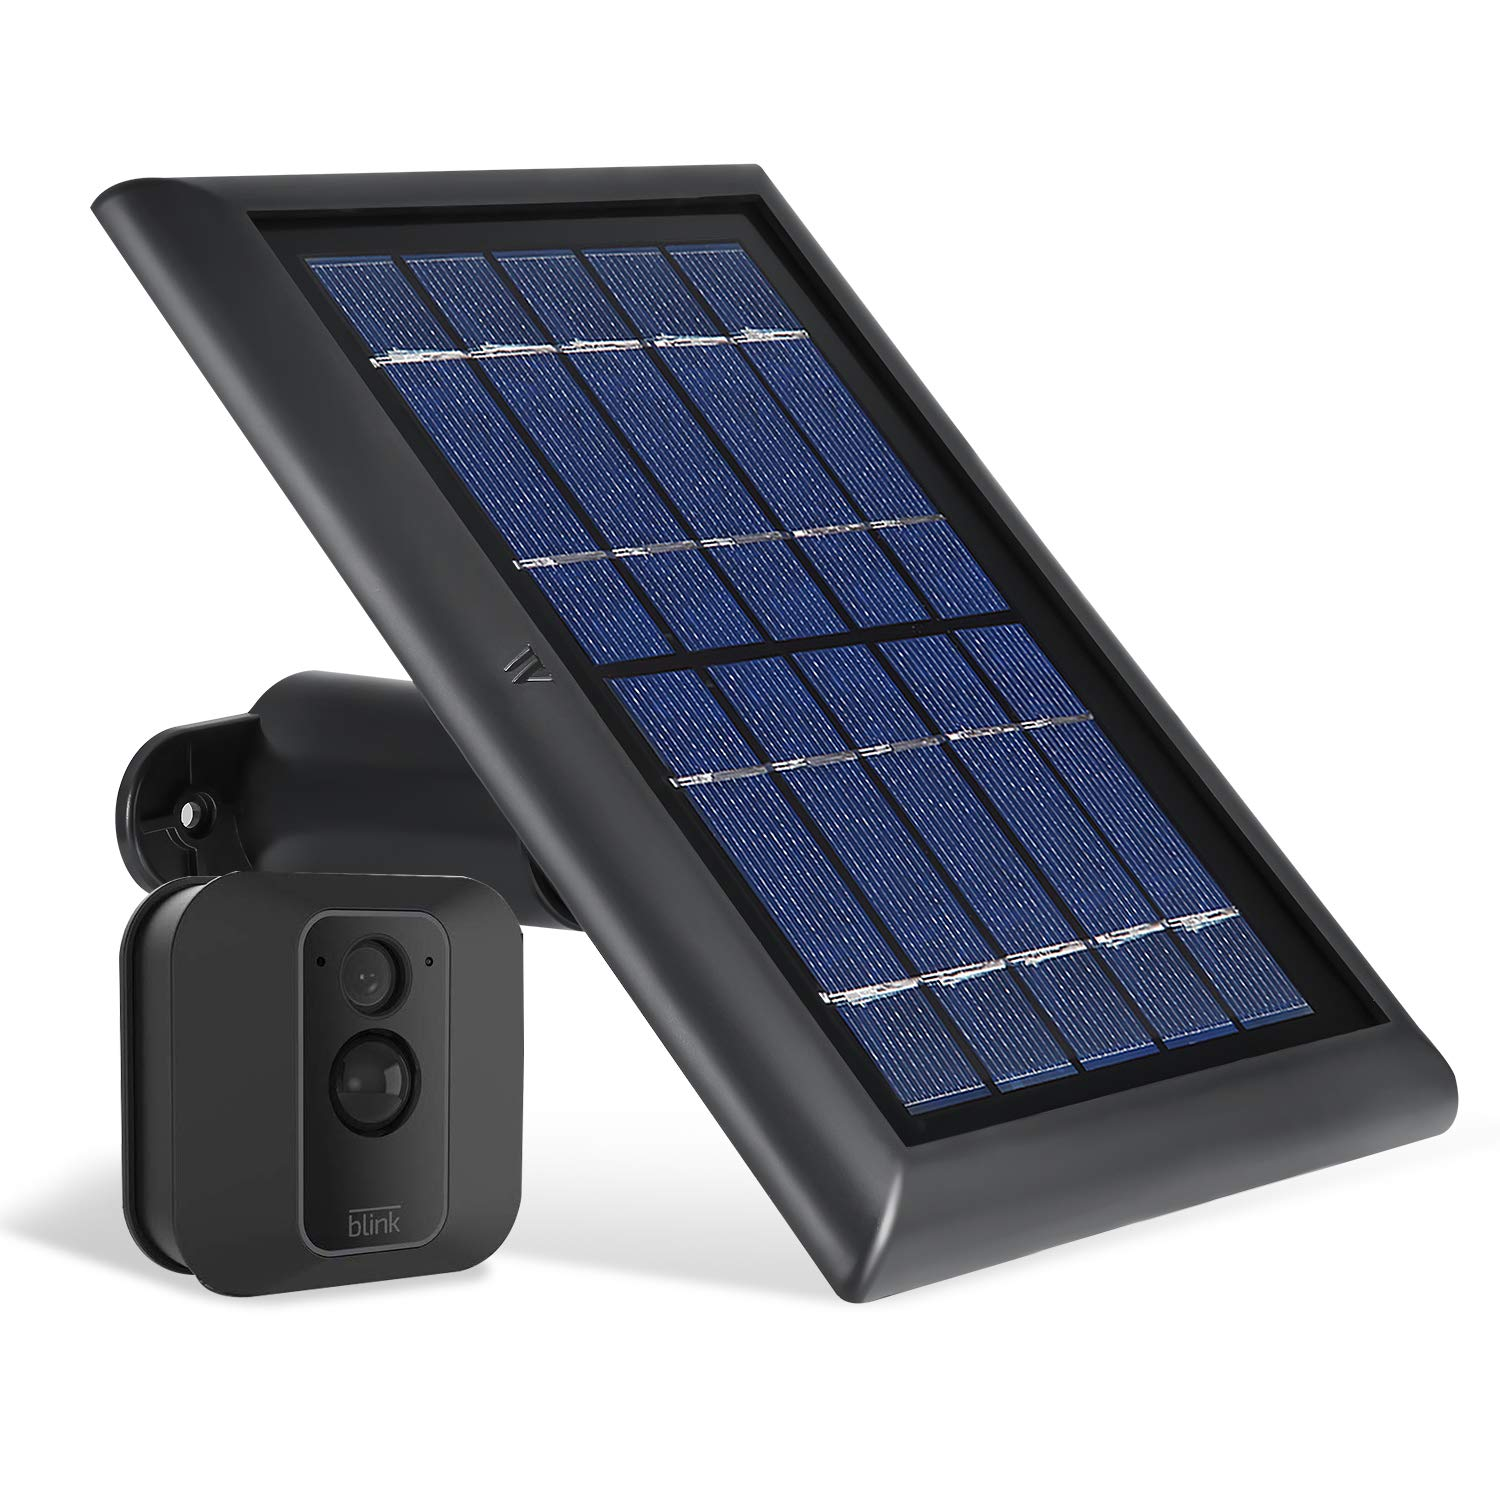 Wasserstein Solar Panel with Internal Battery Compatible with Blink XT and Blink XT2 Outdoor Camera (Black)